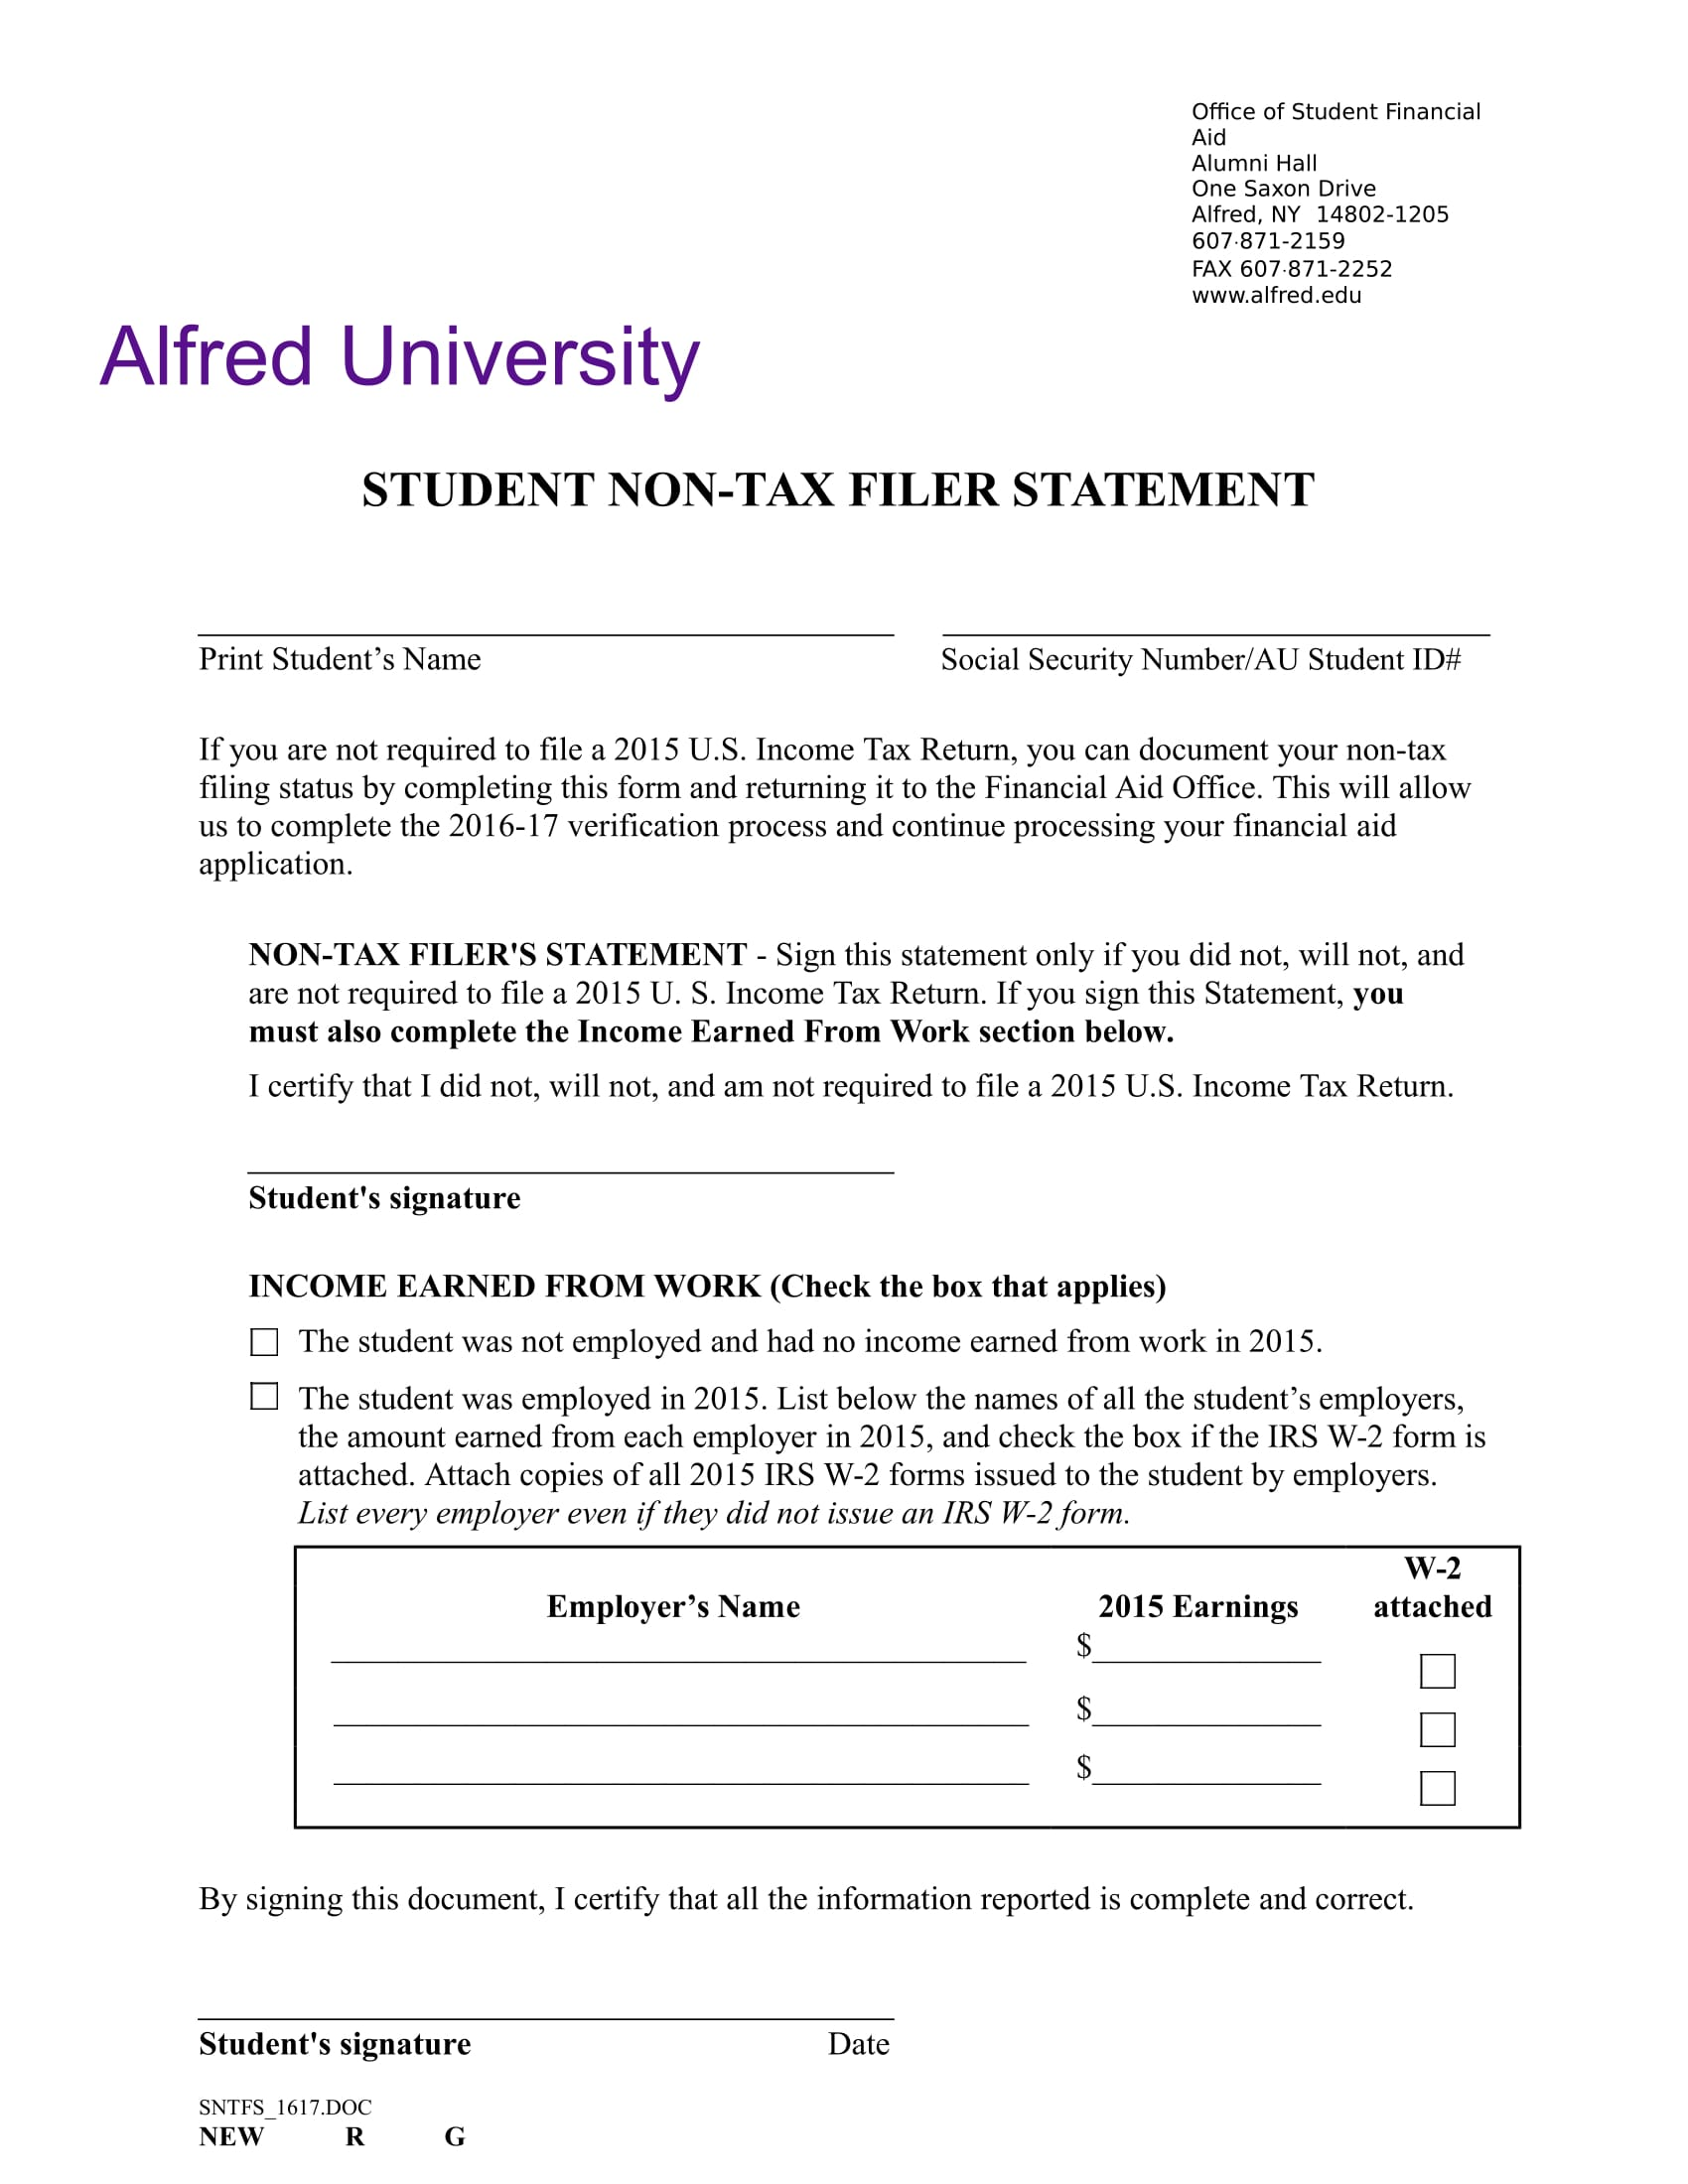 student non tax filer statement form 1